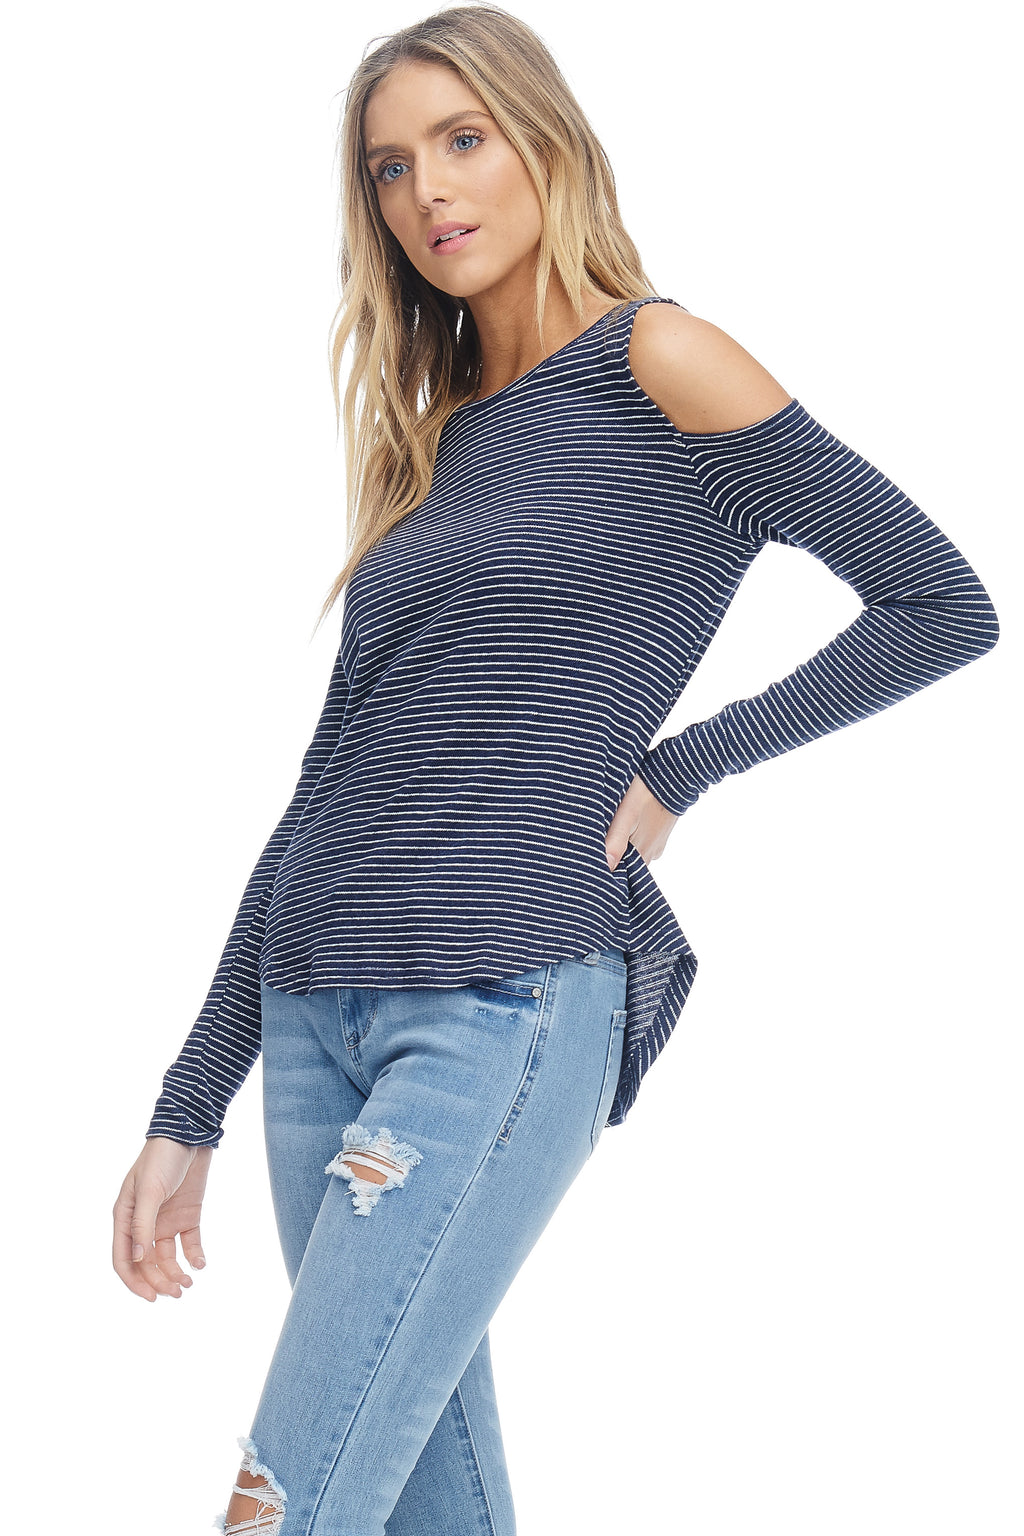 W18-008 Striped Cold Shoulder Top